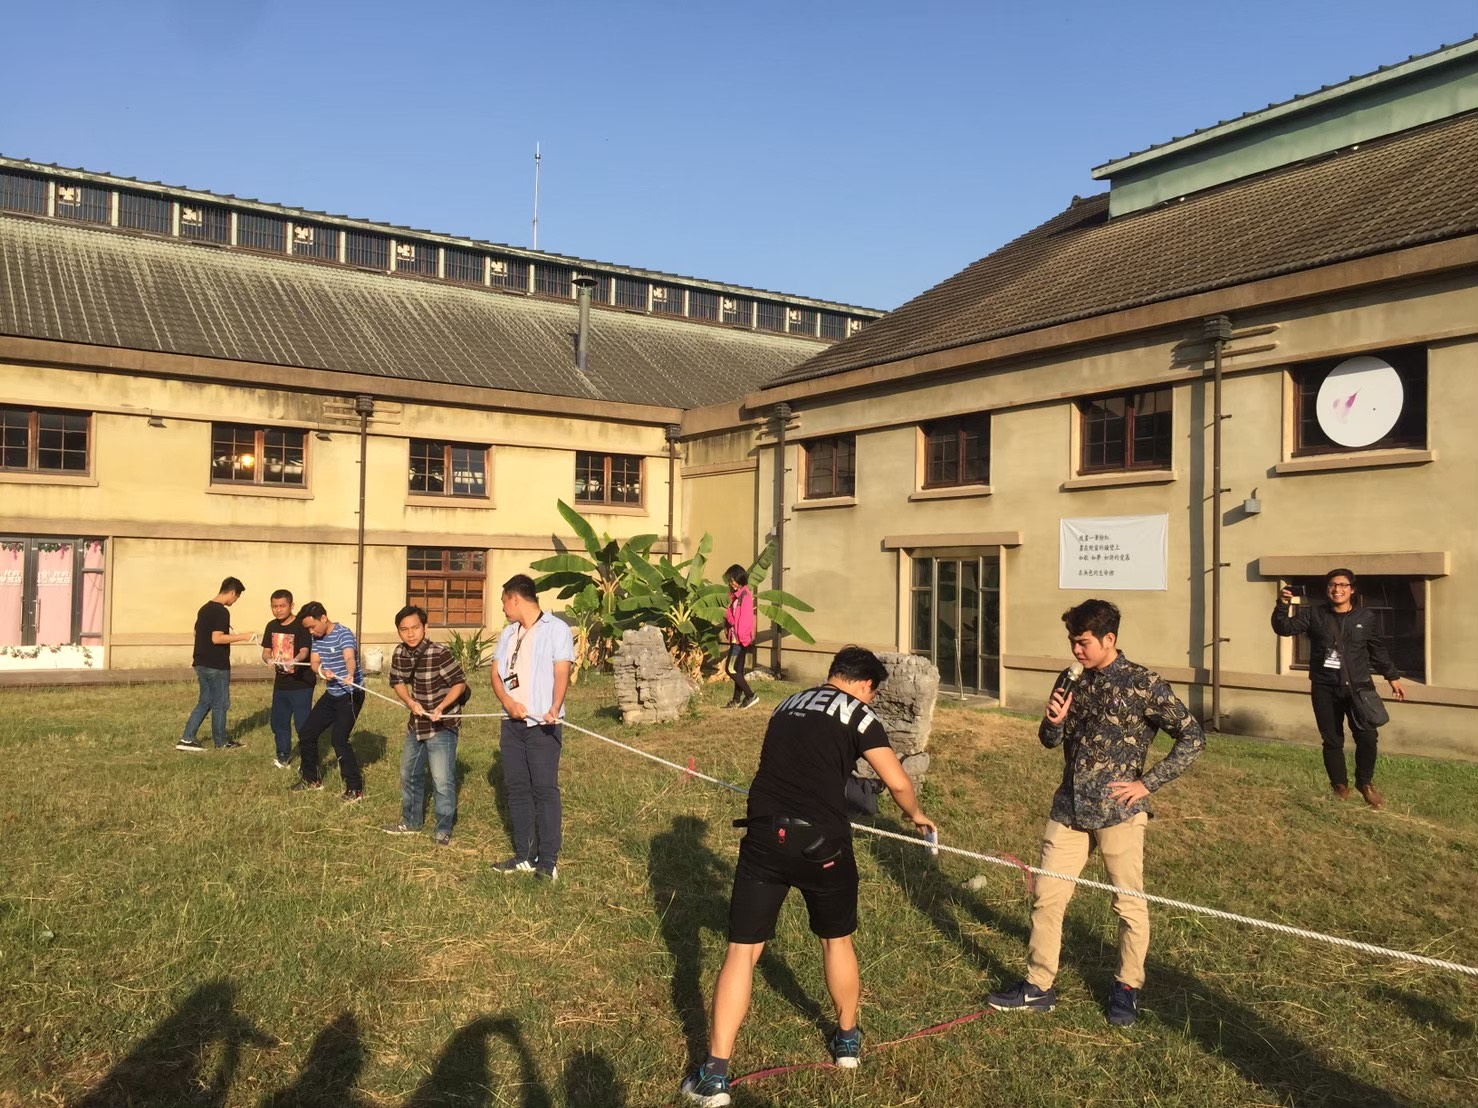 Tug of War Competition. Source: Documentation of ICF Chiayi.